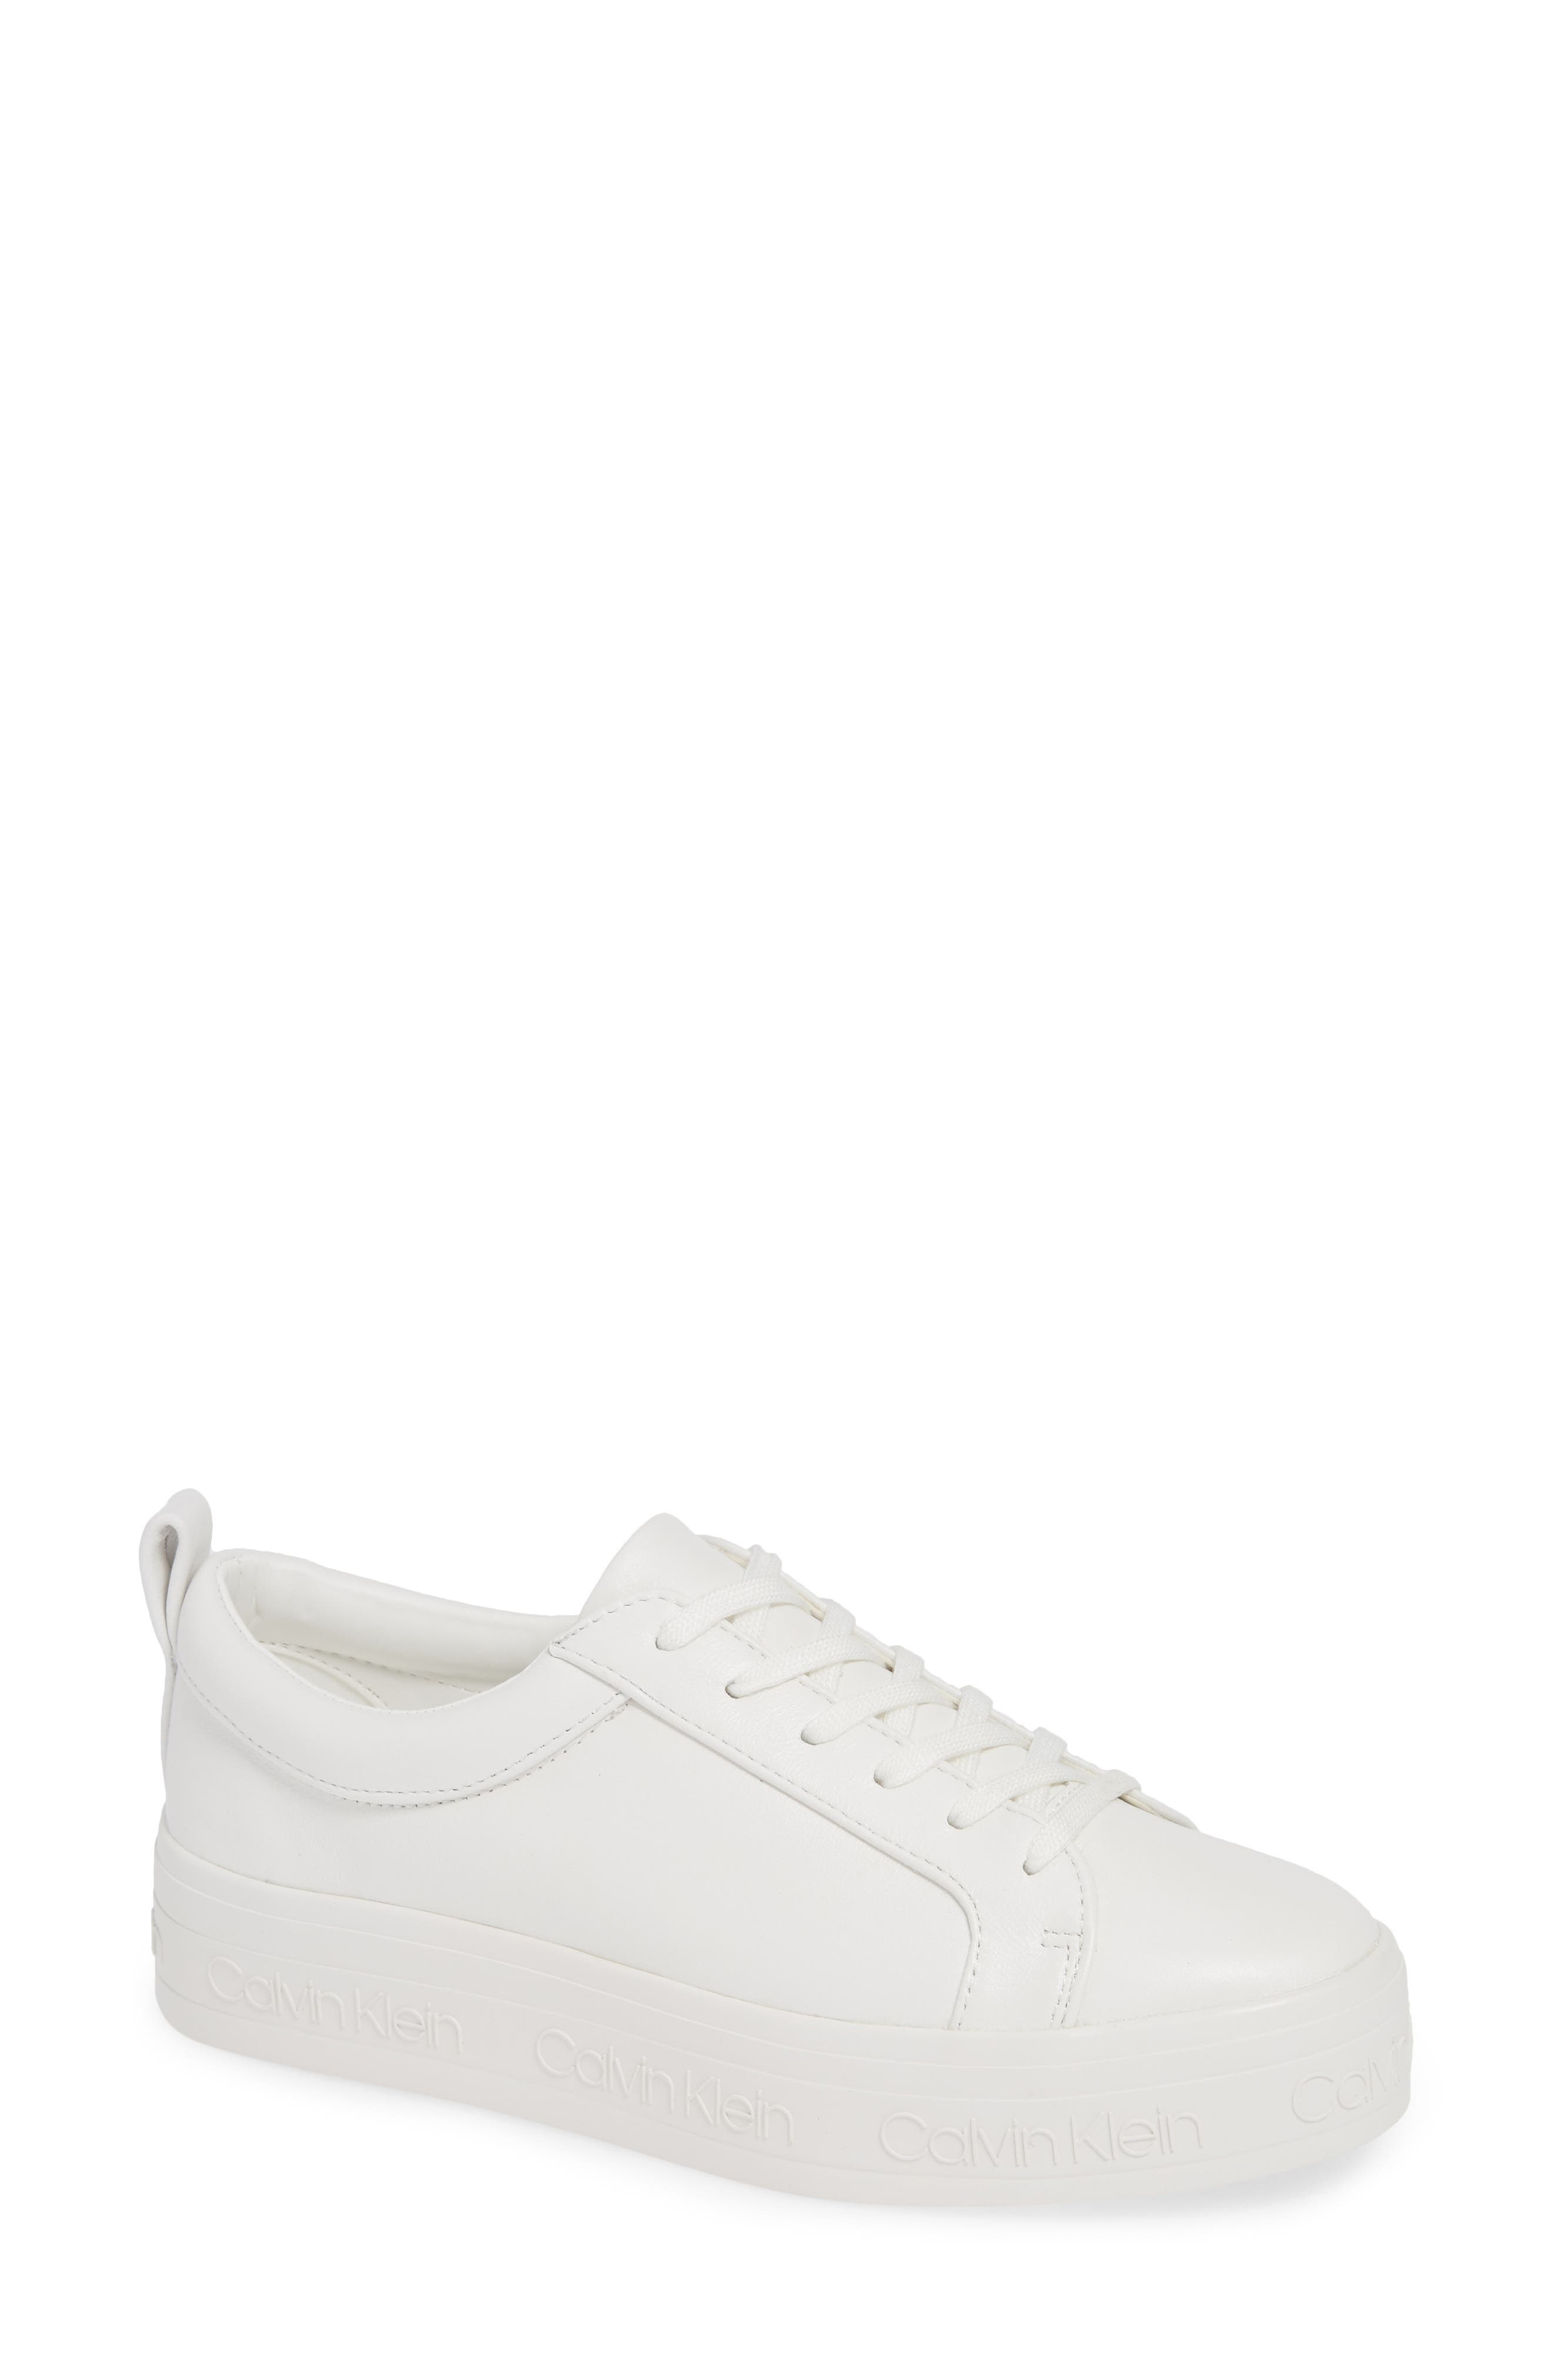 CALVIN KLEIN, Jaelee Sneaker, Main thumbnail 1, color, WHITE NAPPA LEATHER